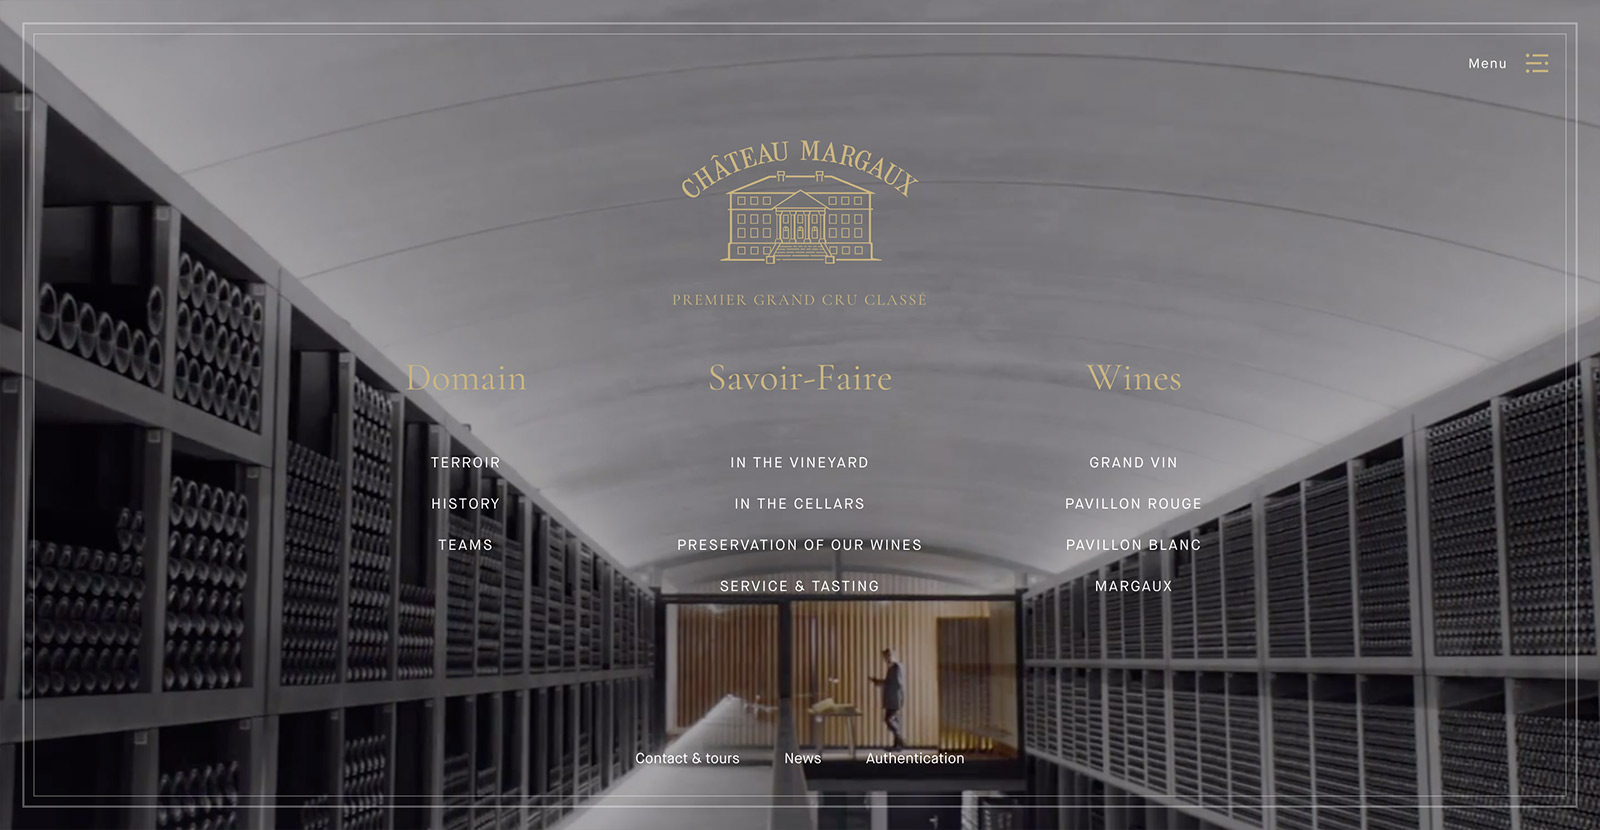 The website for Château Margaux